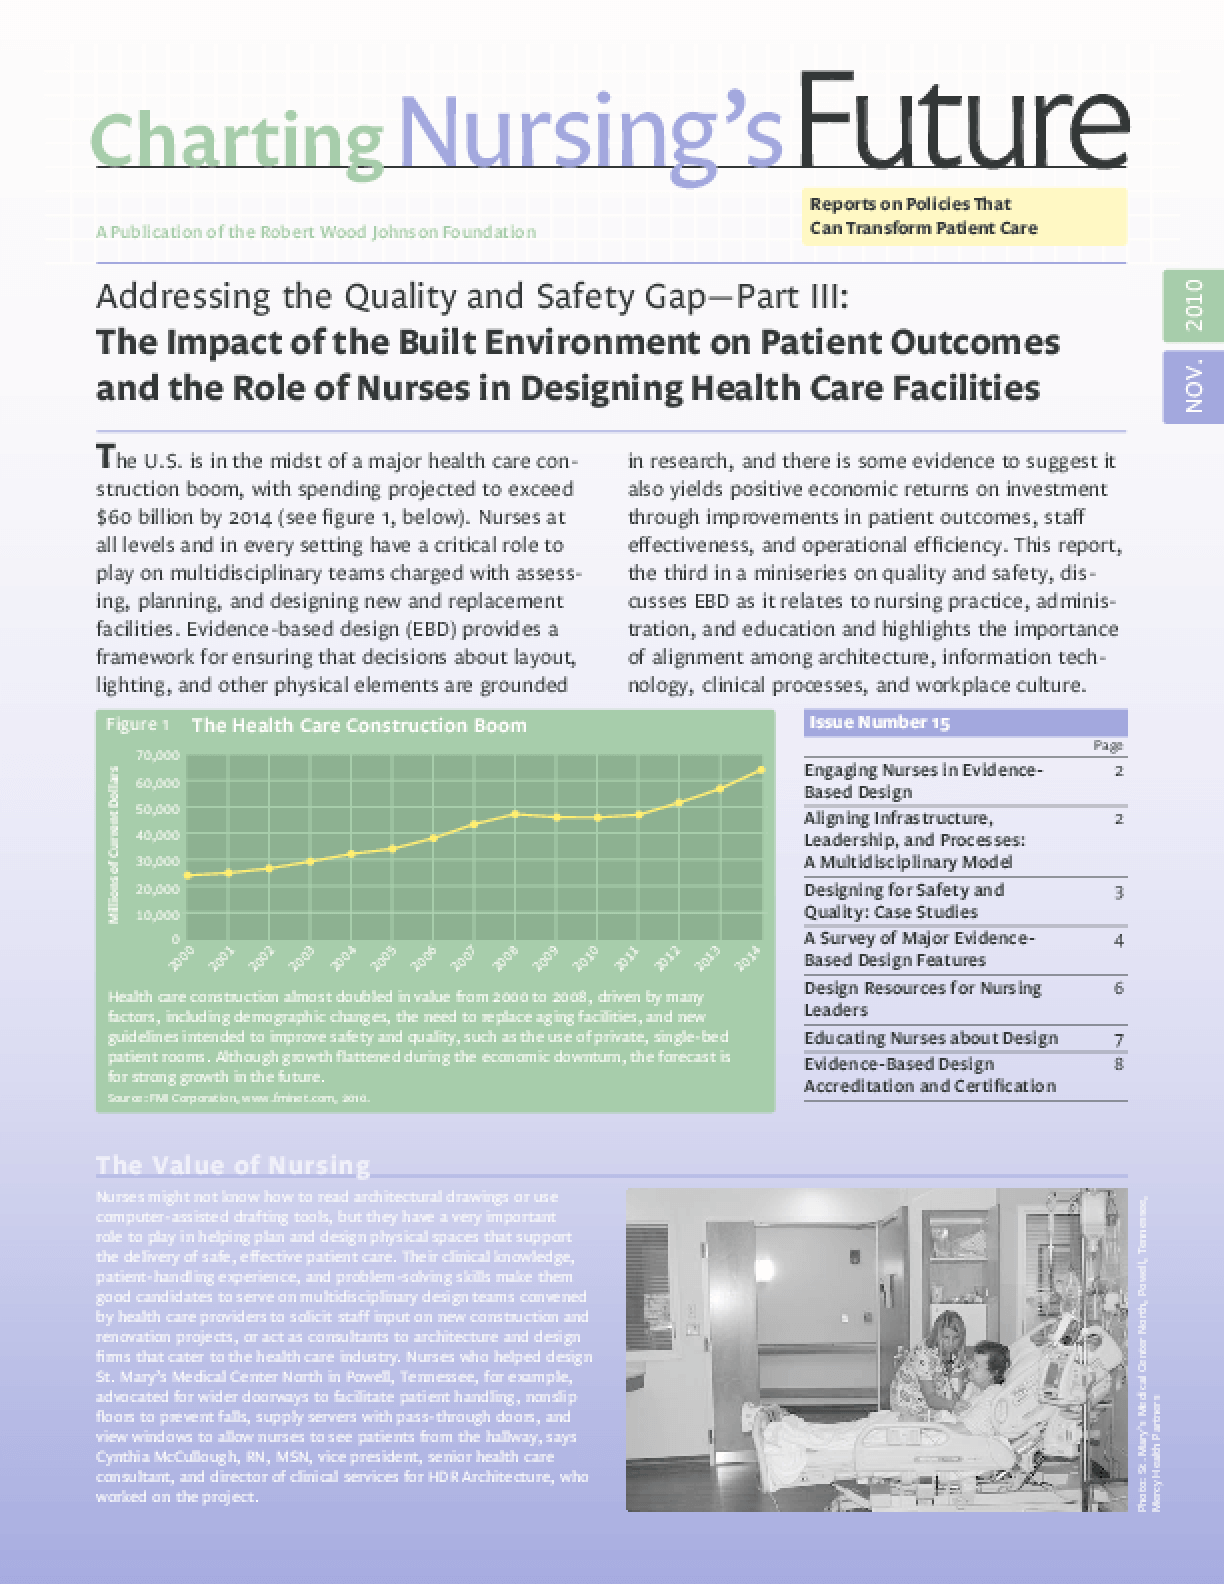 Addressing the Quality and Safety Gap Part III: The Impact of the Built Environment on Patient Outcomes and the Role of Nurses in Designing Health Care Facilities